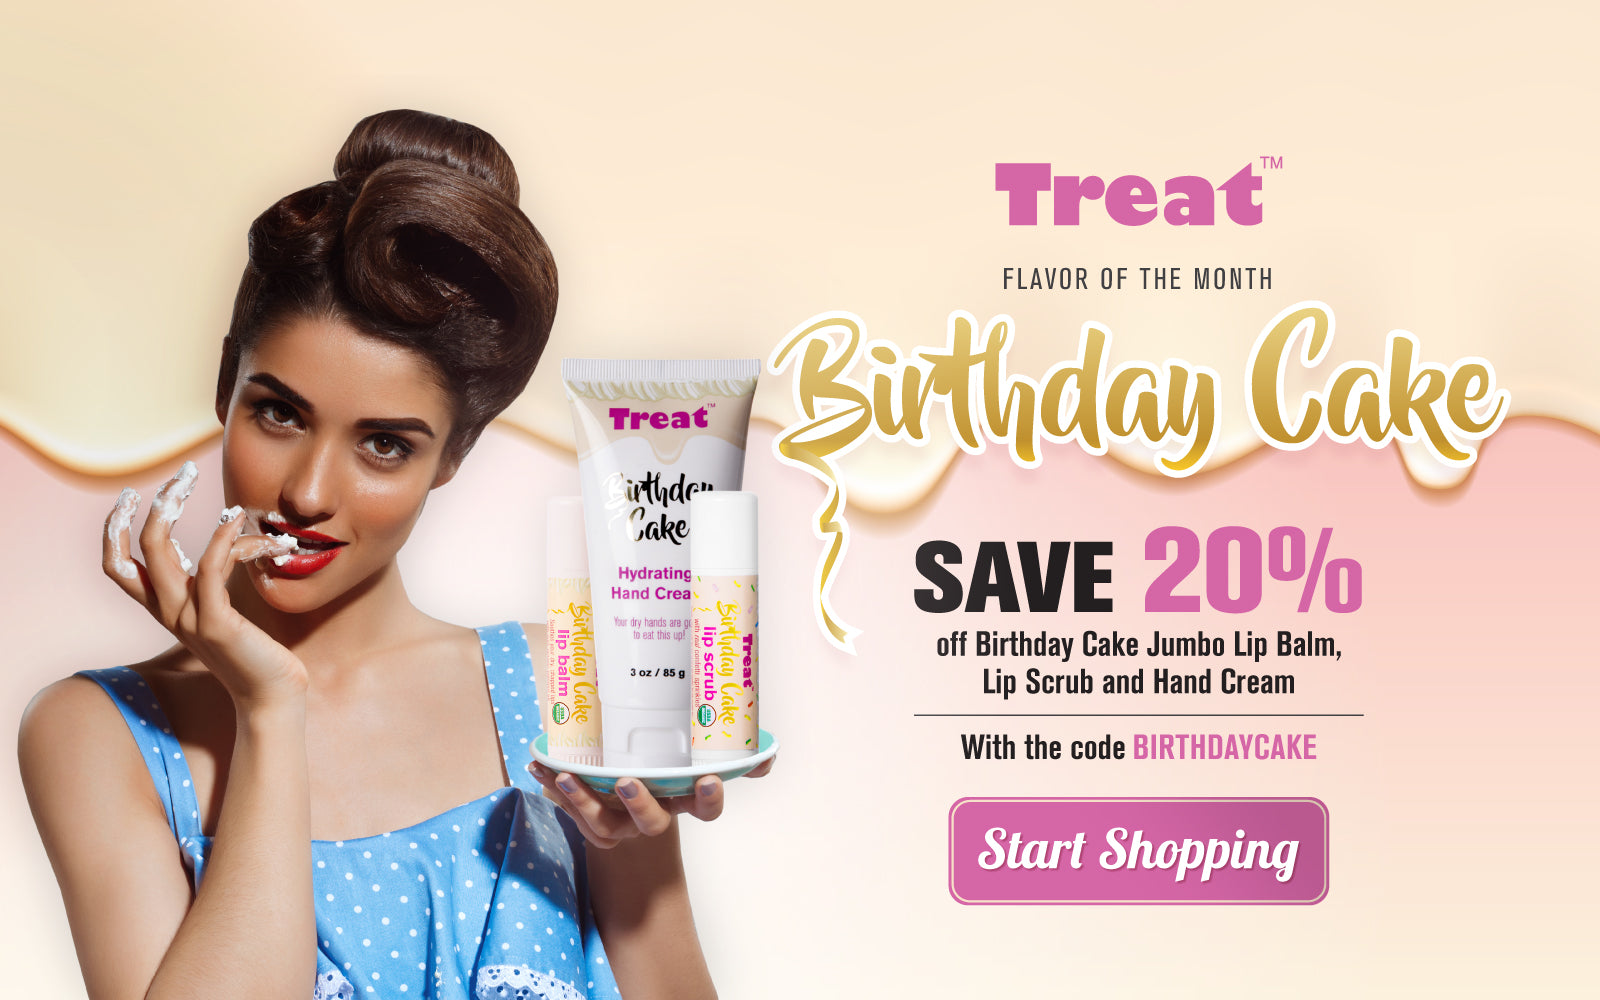 Treat Birthday Cake Flavor of the Month